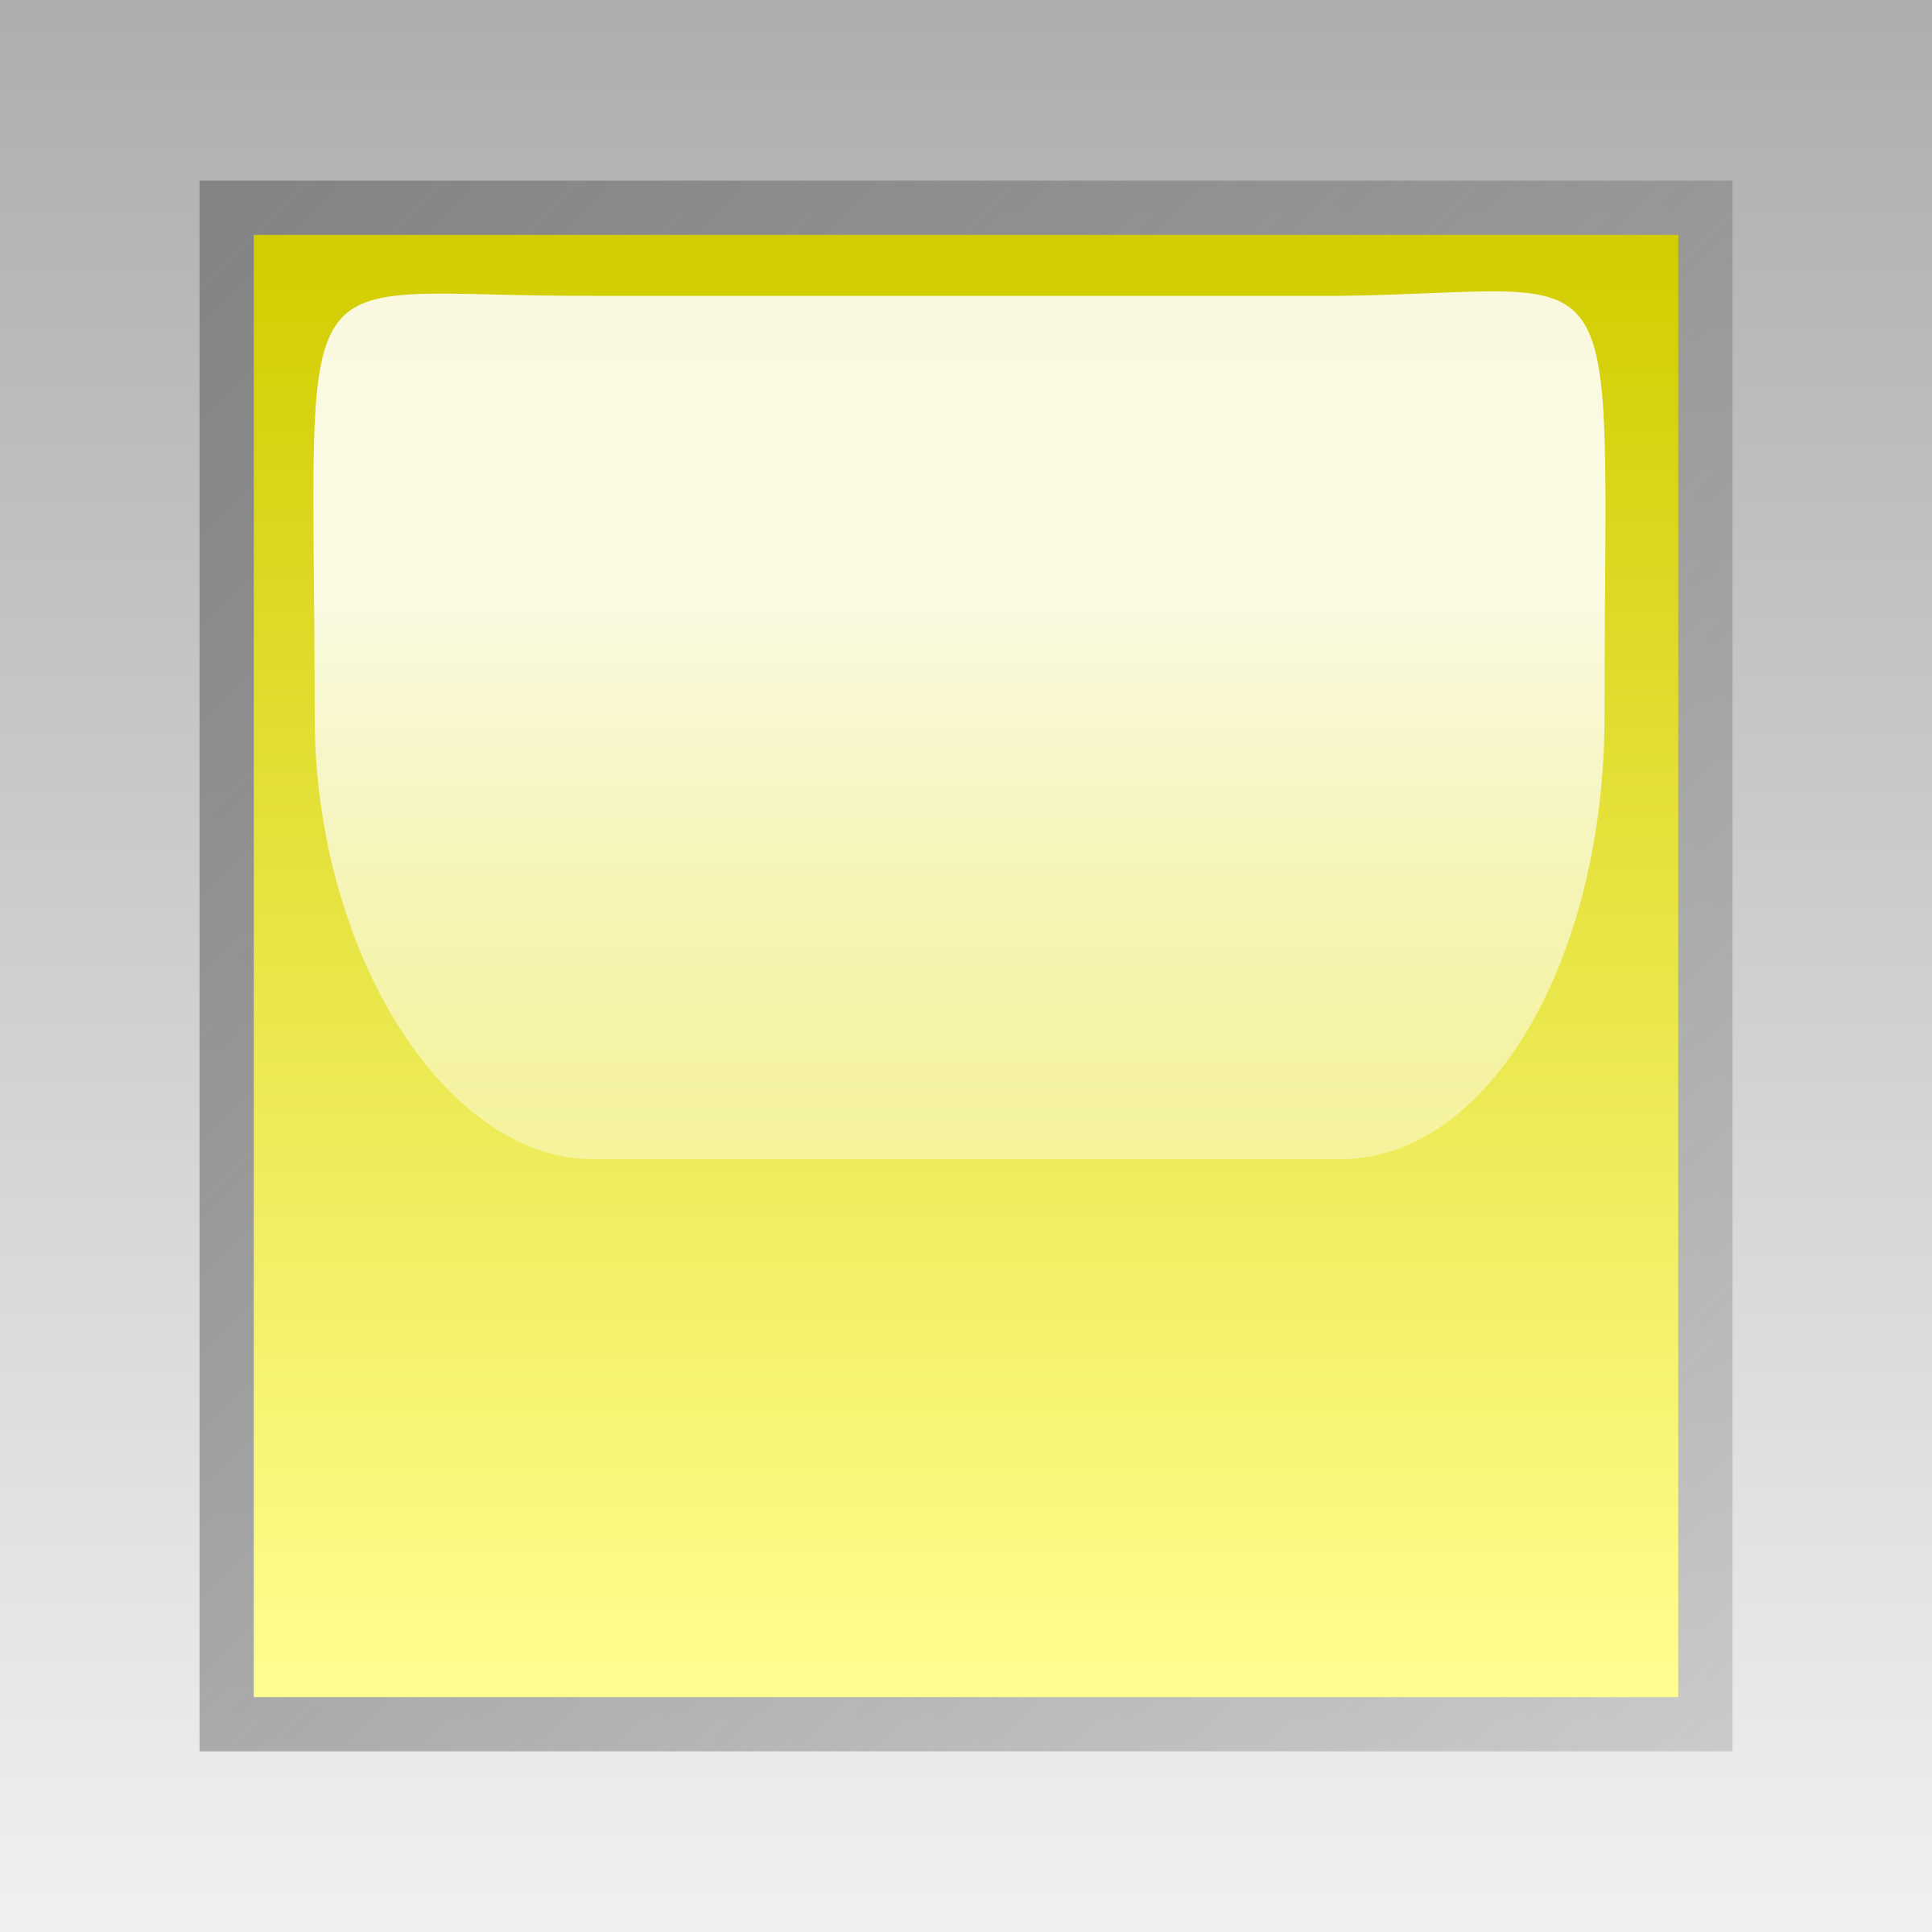 led square yellow by jean_victor_balin